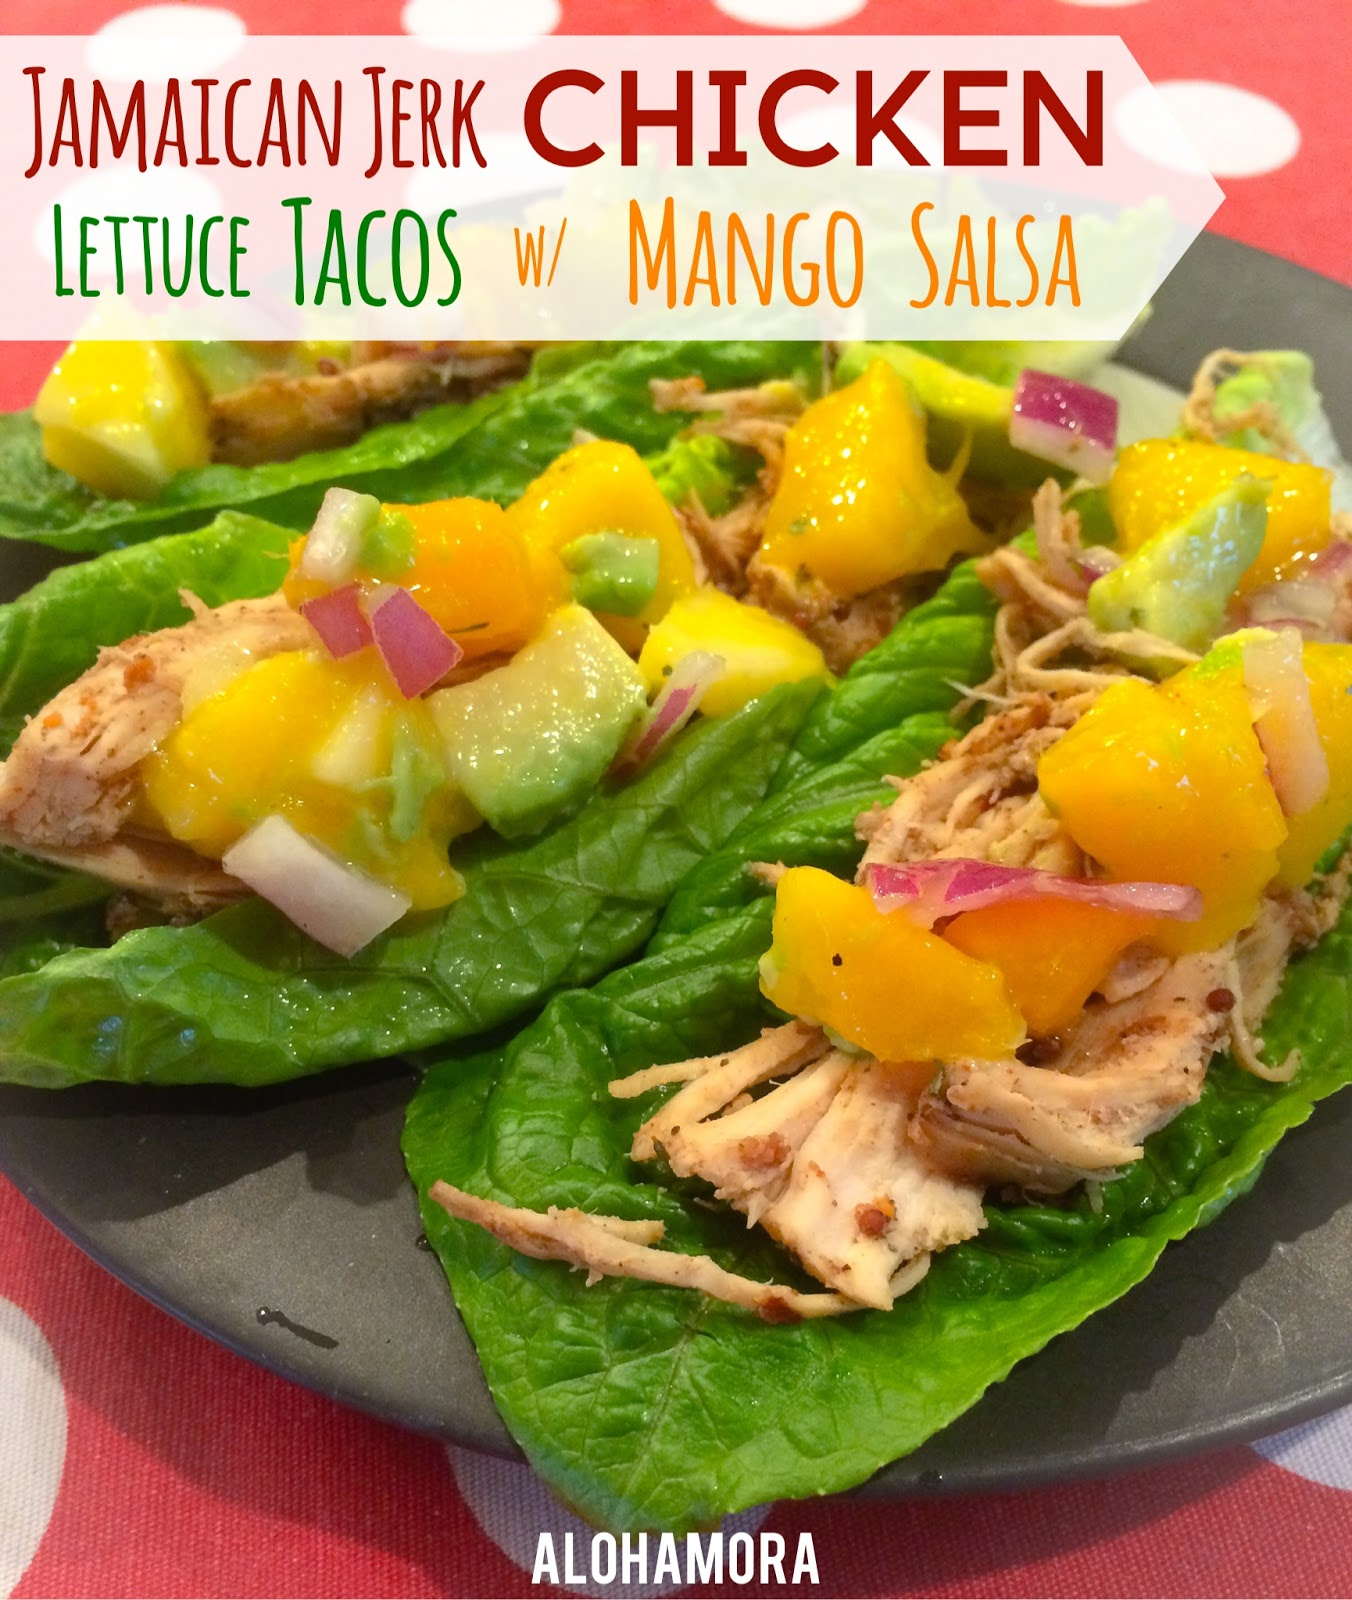 Jamaican Jerk Chicken Lettuce Tacos with Mango Salsa.  Slow-Cooker/Crock-Pot chicken you can make easily for any weeknight.  This healthy/diet friendly meal is full of flavor and spiciness from the jamaican jerk but the cool mango salsa is refreshing. Alohamora Open a Book http://www.alohamoraopenabook.blogspot.com/